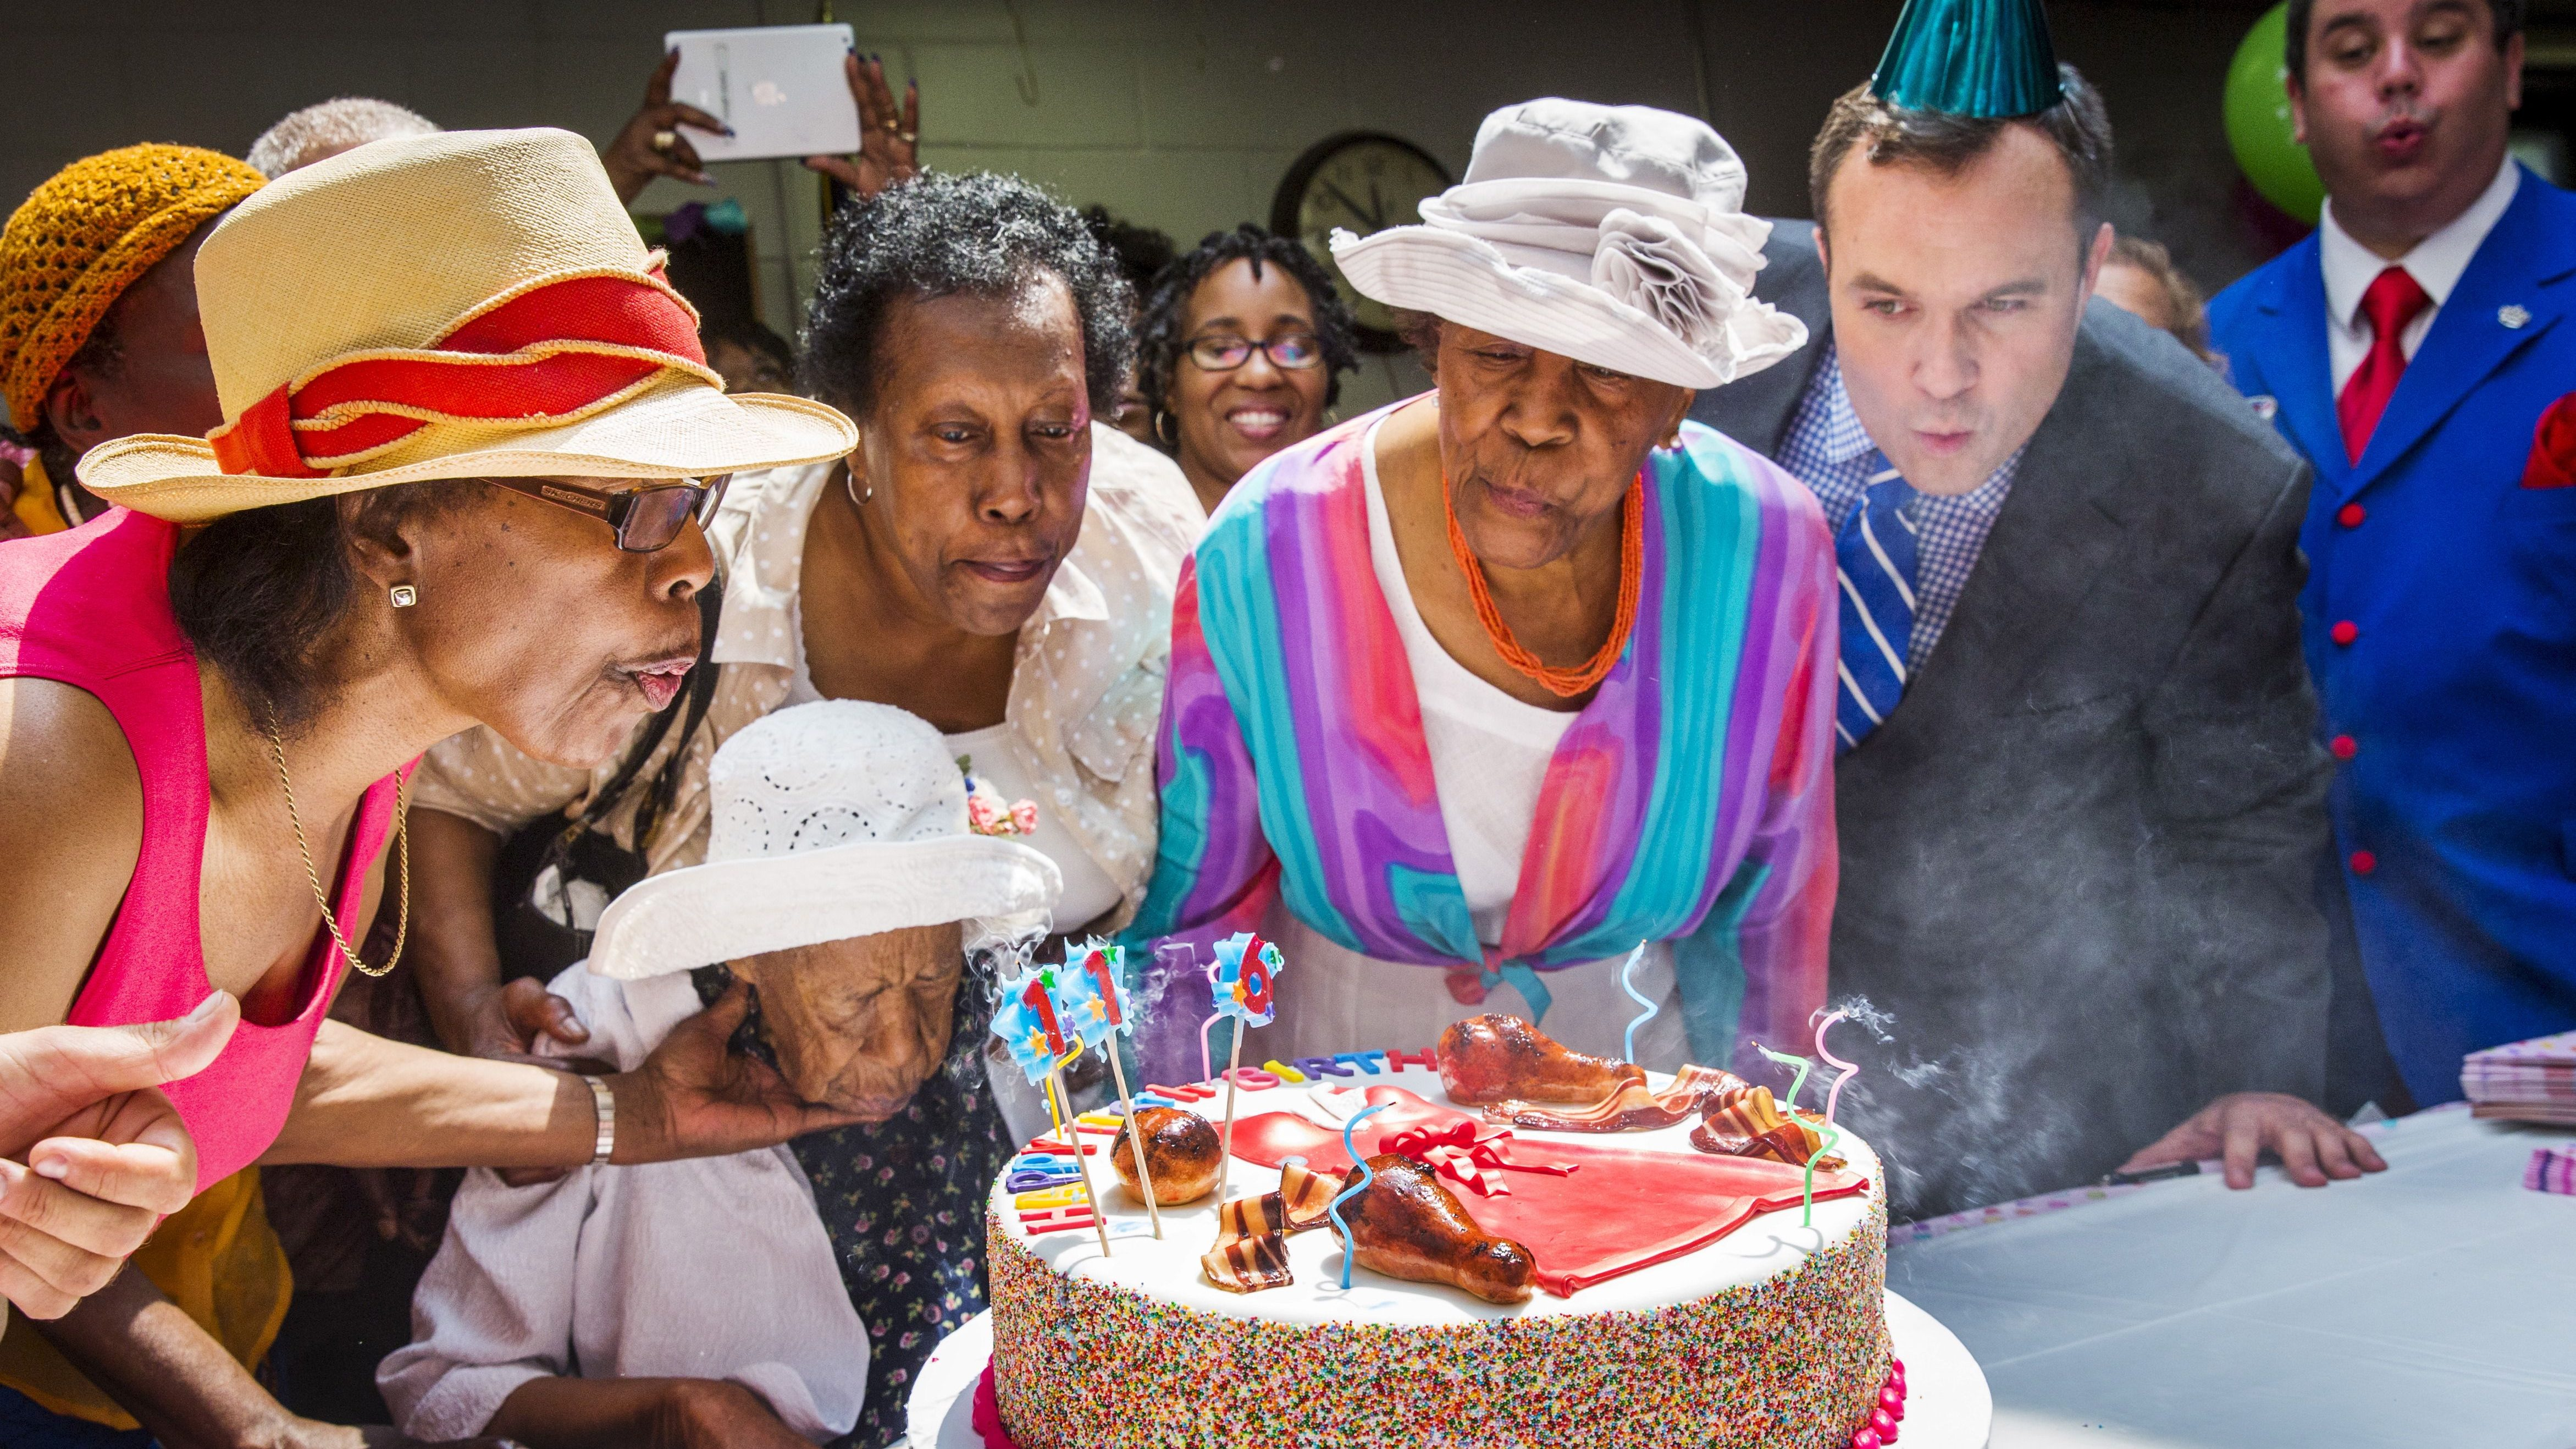 """Susannah Mushatt Jones (seated), known as """"Miss Susie"""" celebrates her 116th birthday with family members, local dignitaries, and friends in the Brooklyn borough of New York"""